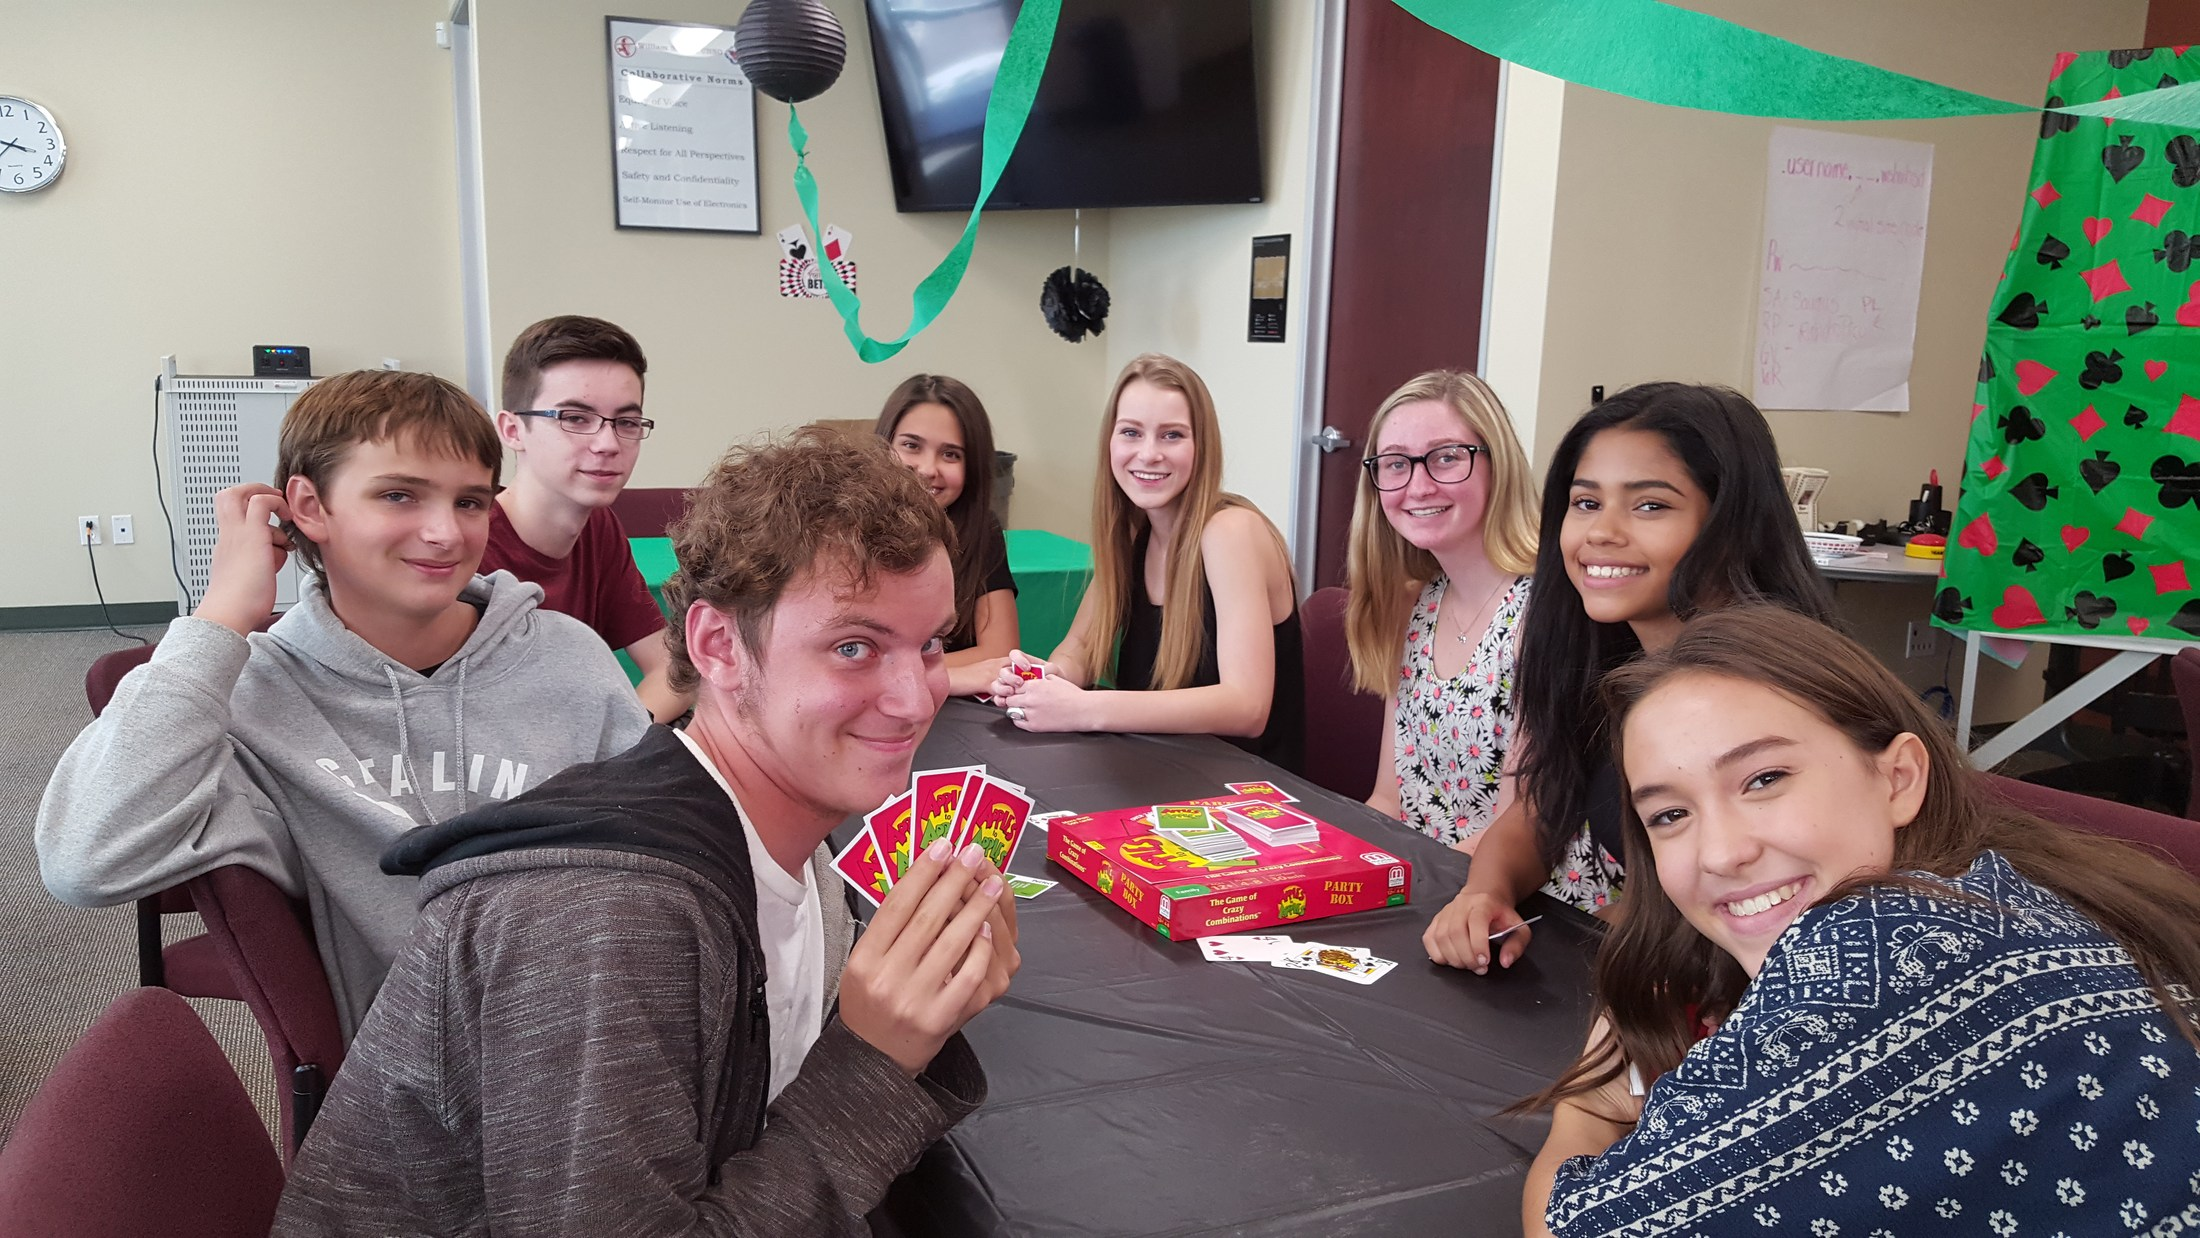 Photo of students playing card games at game night